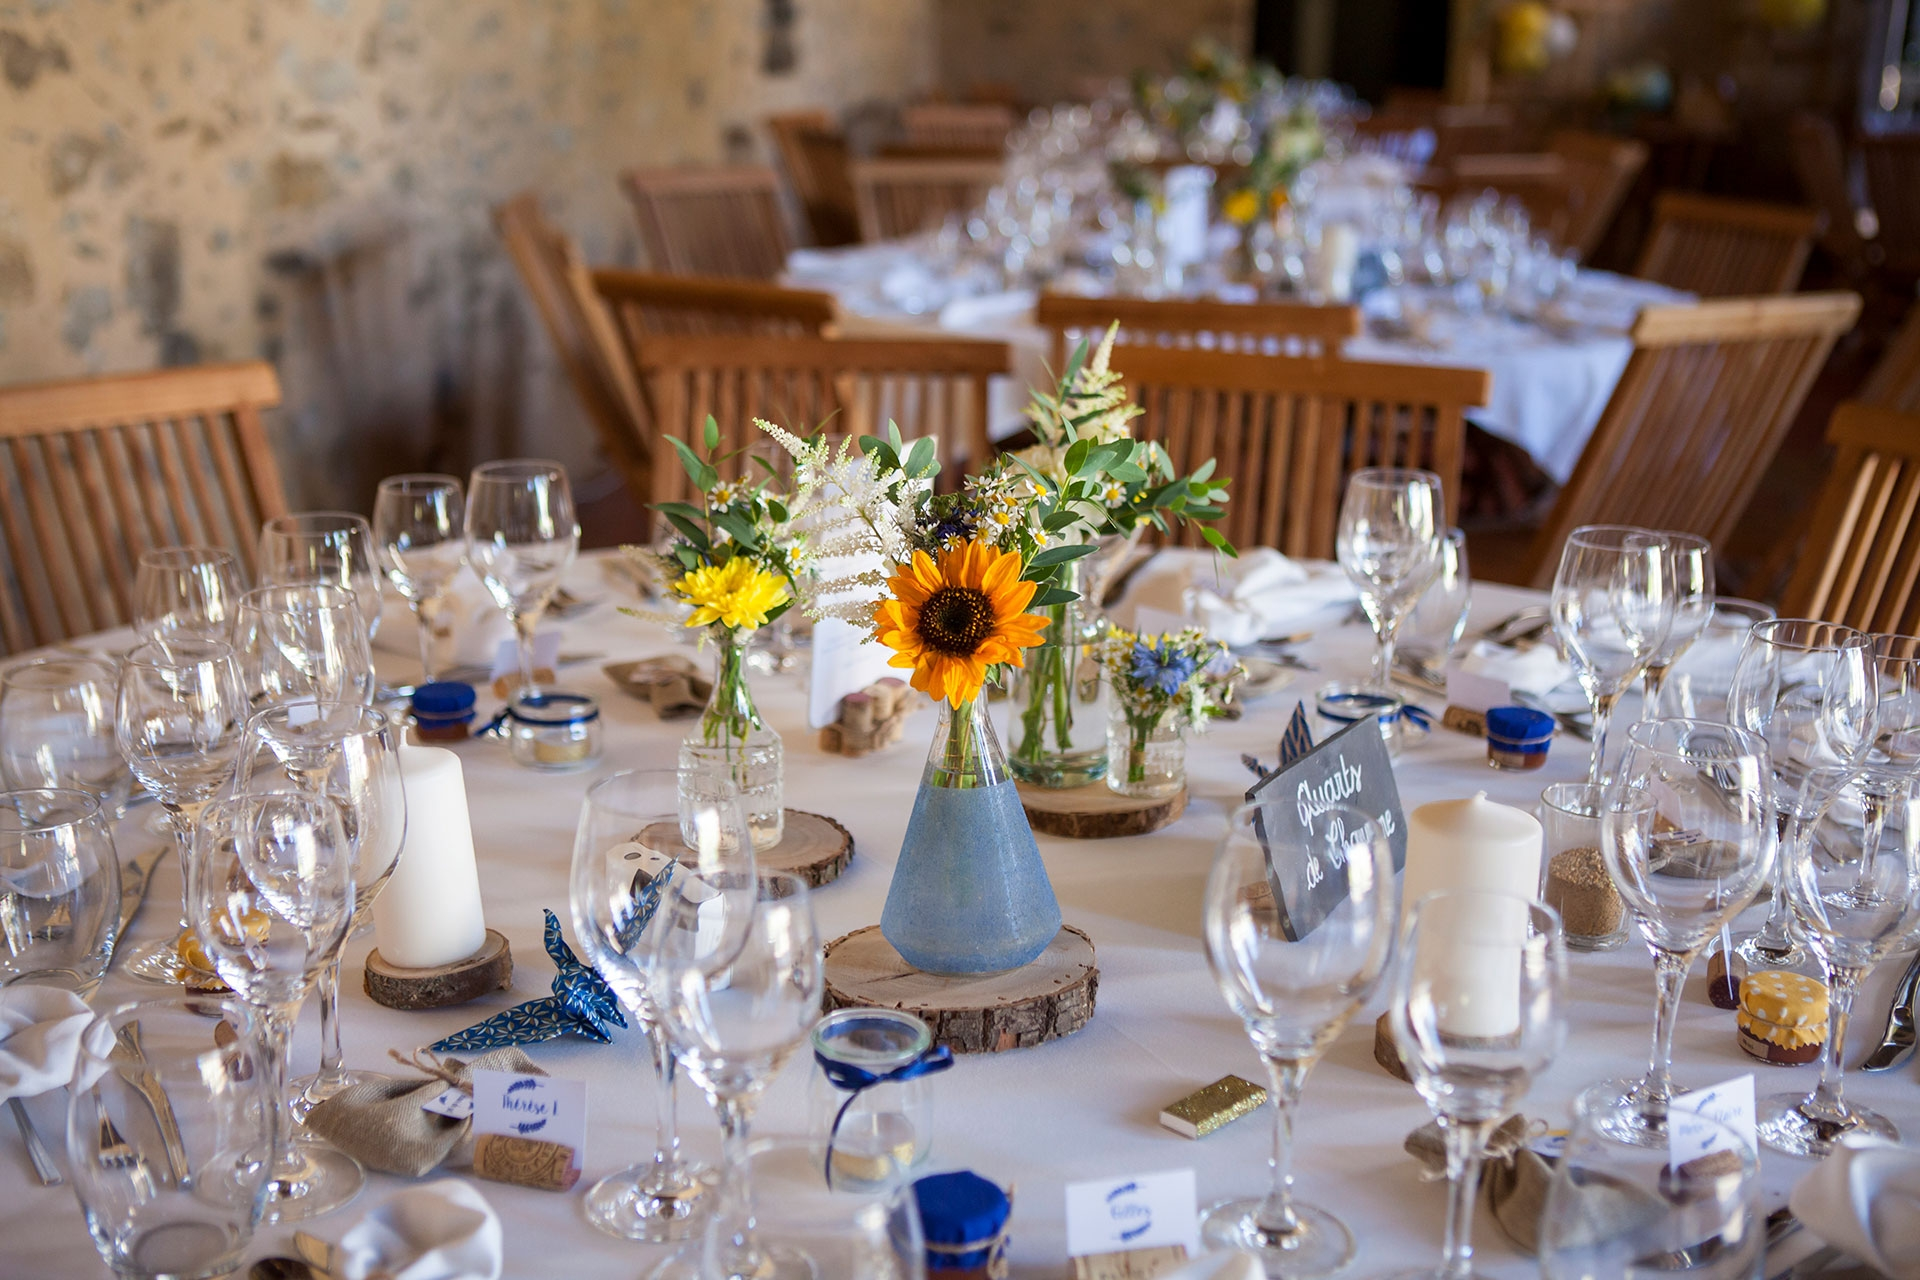 particuliers-evenements-mariage-oui-elise&quentin-64